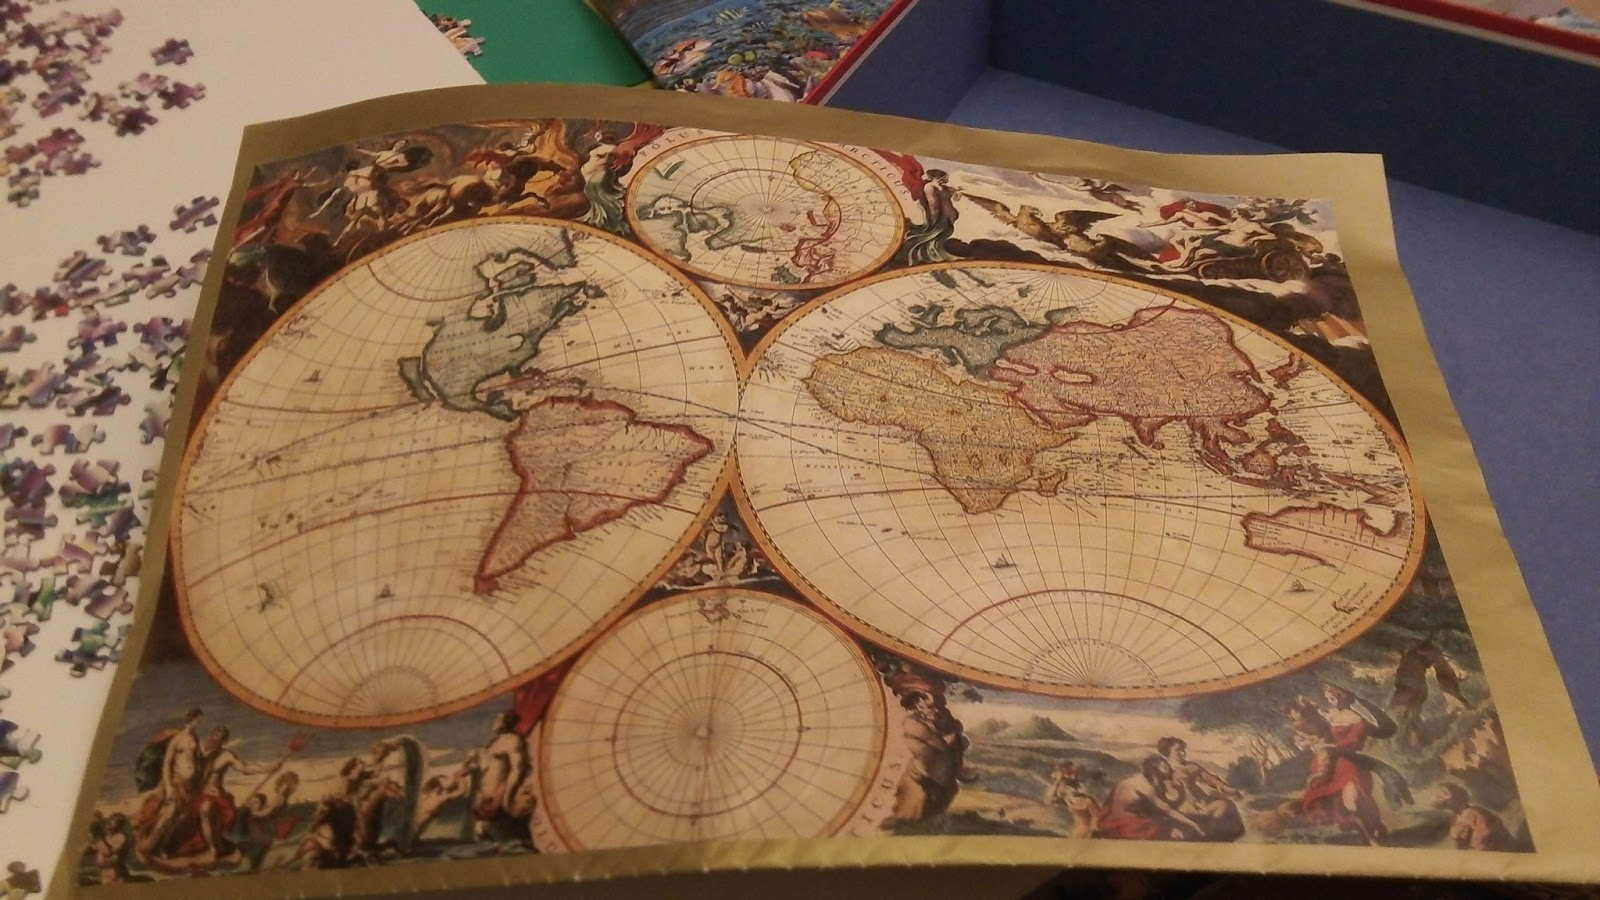 4 04 world history World history homework help and answers popular world history textbooks see all world history textbooks world history patterns of interaction.